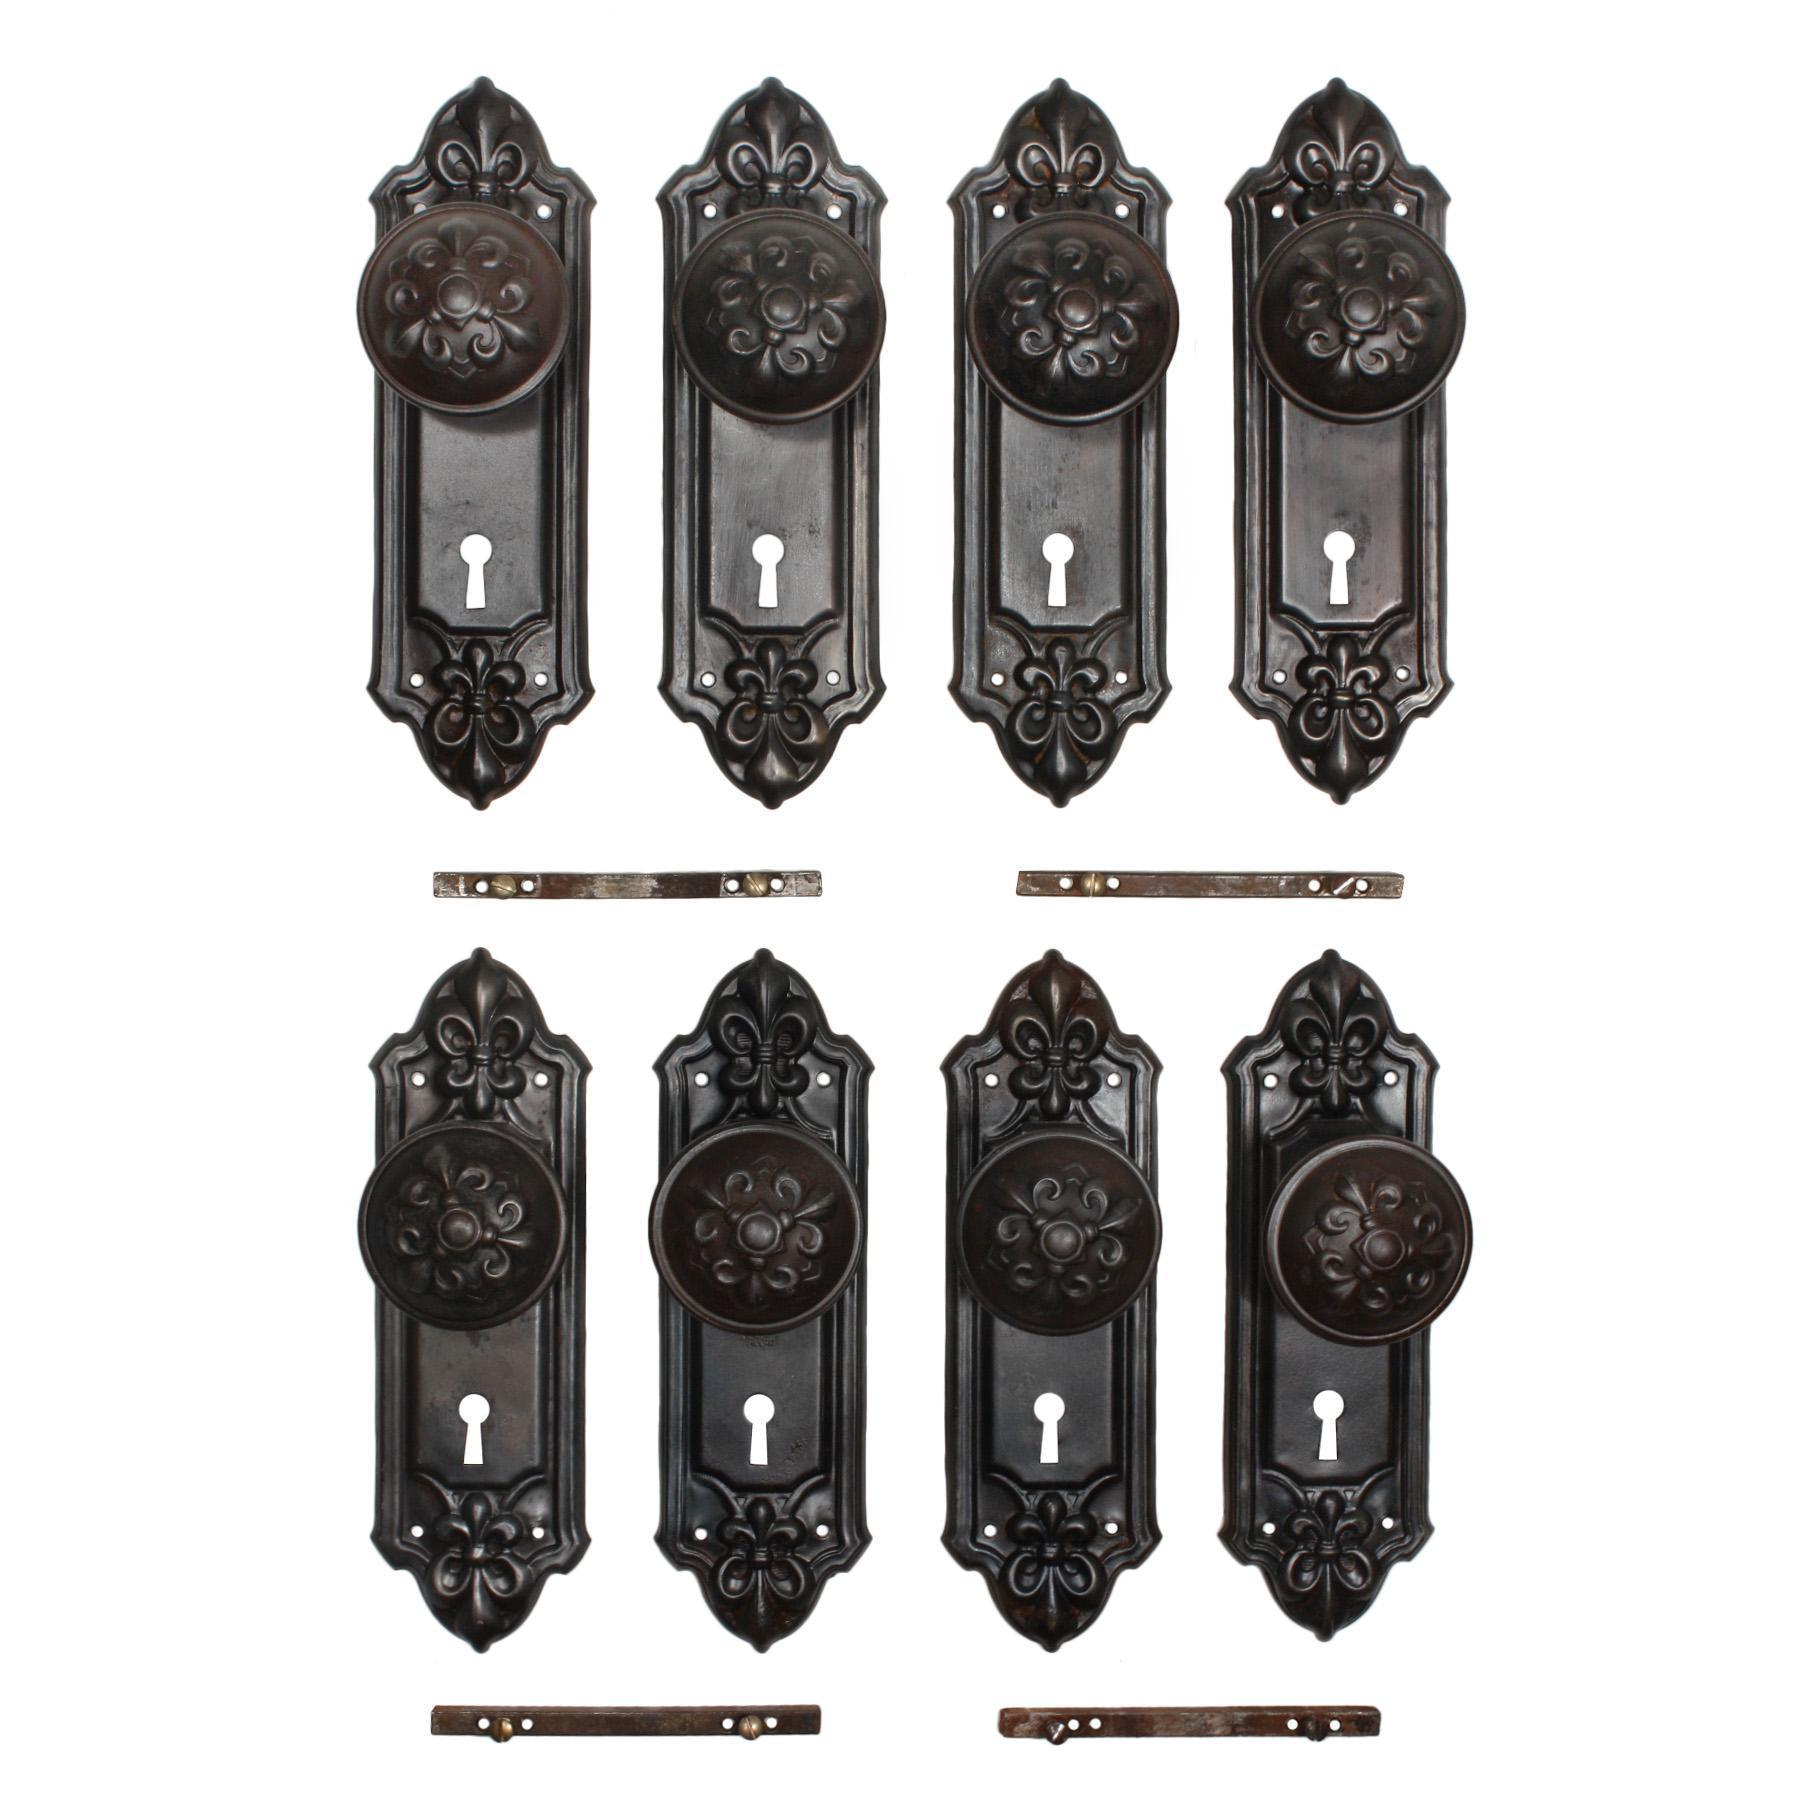 "Antique Fleur-de-Lis Door Hardware Sets, ""Fleuroy"" by Reading Hardware"